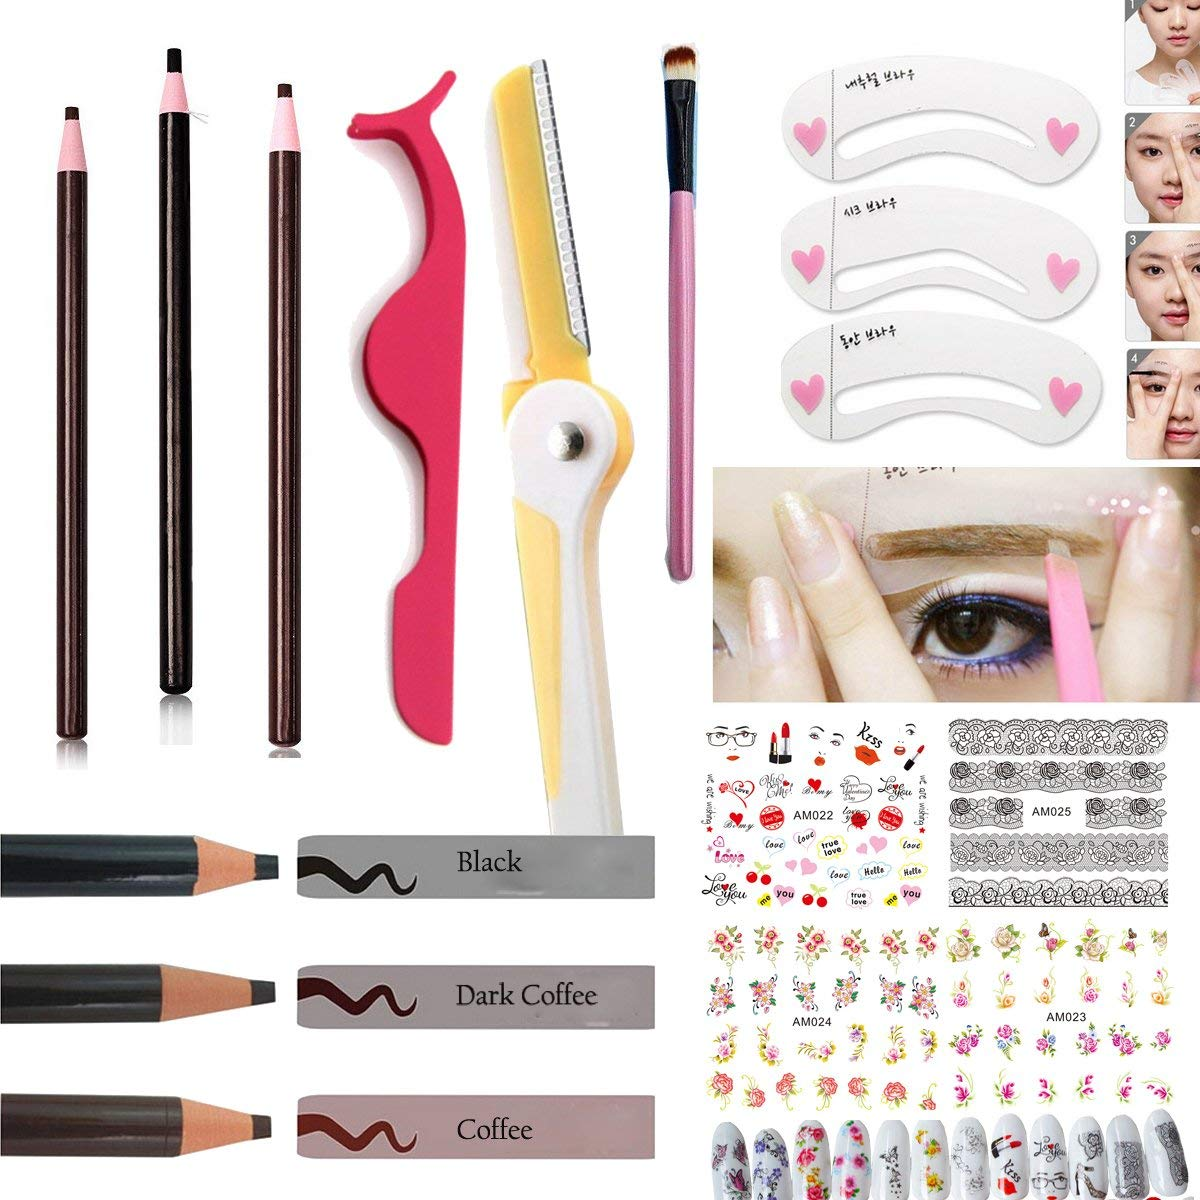 Eyebrow Makeup Kit Set:3PC Waterproof Eyebrow Pencils Black Brown Dark Coffee,1PC Eyelash Extensions Tweezers Eyebrow Trimmer Makeup Brushes Eyebrow Stencils,4PC Nail Stickers (LOHSET006A)